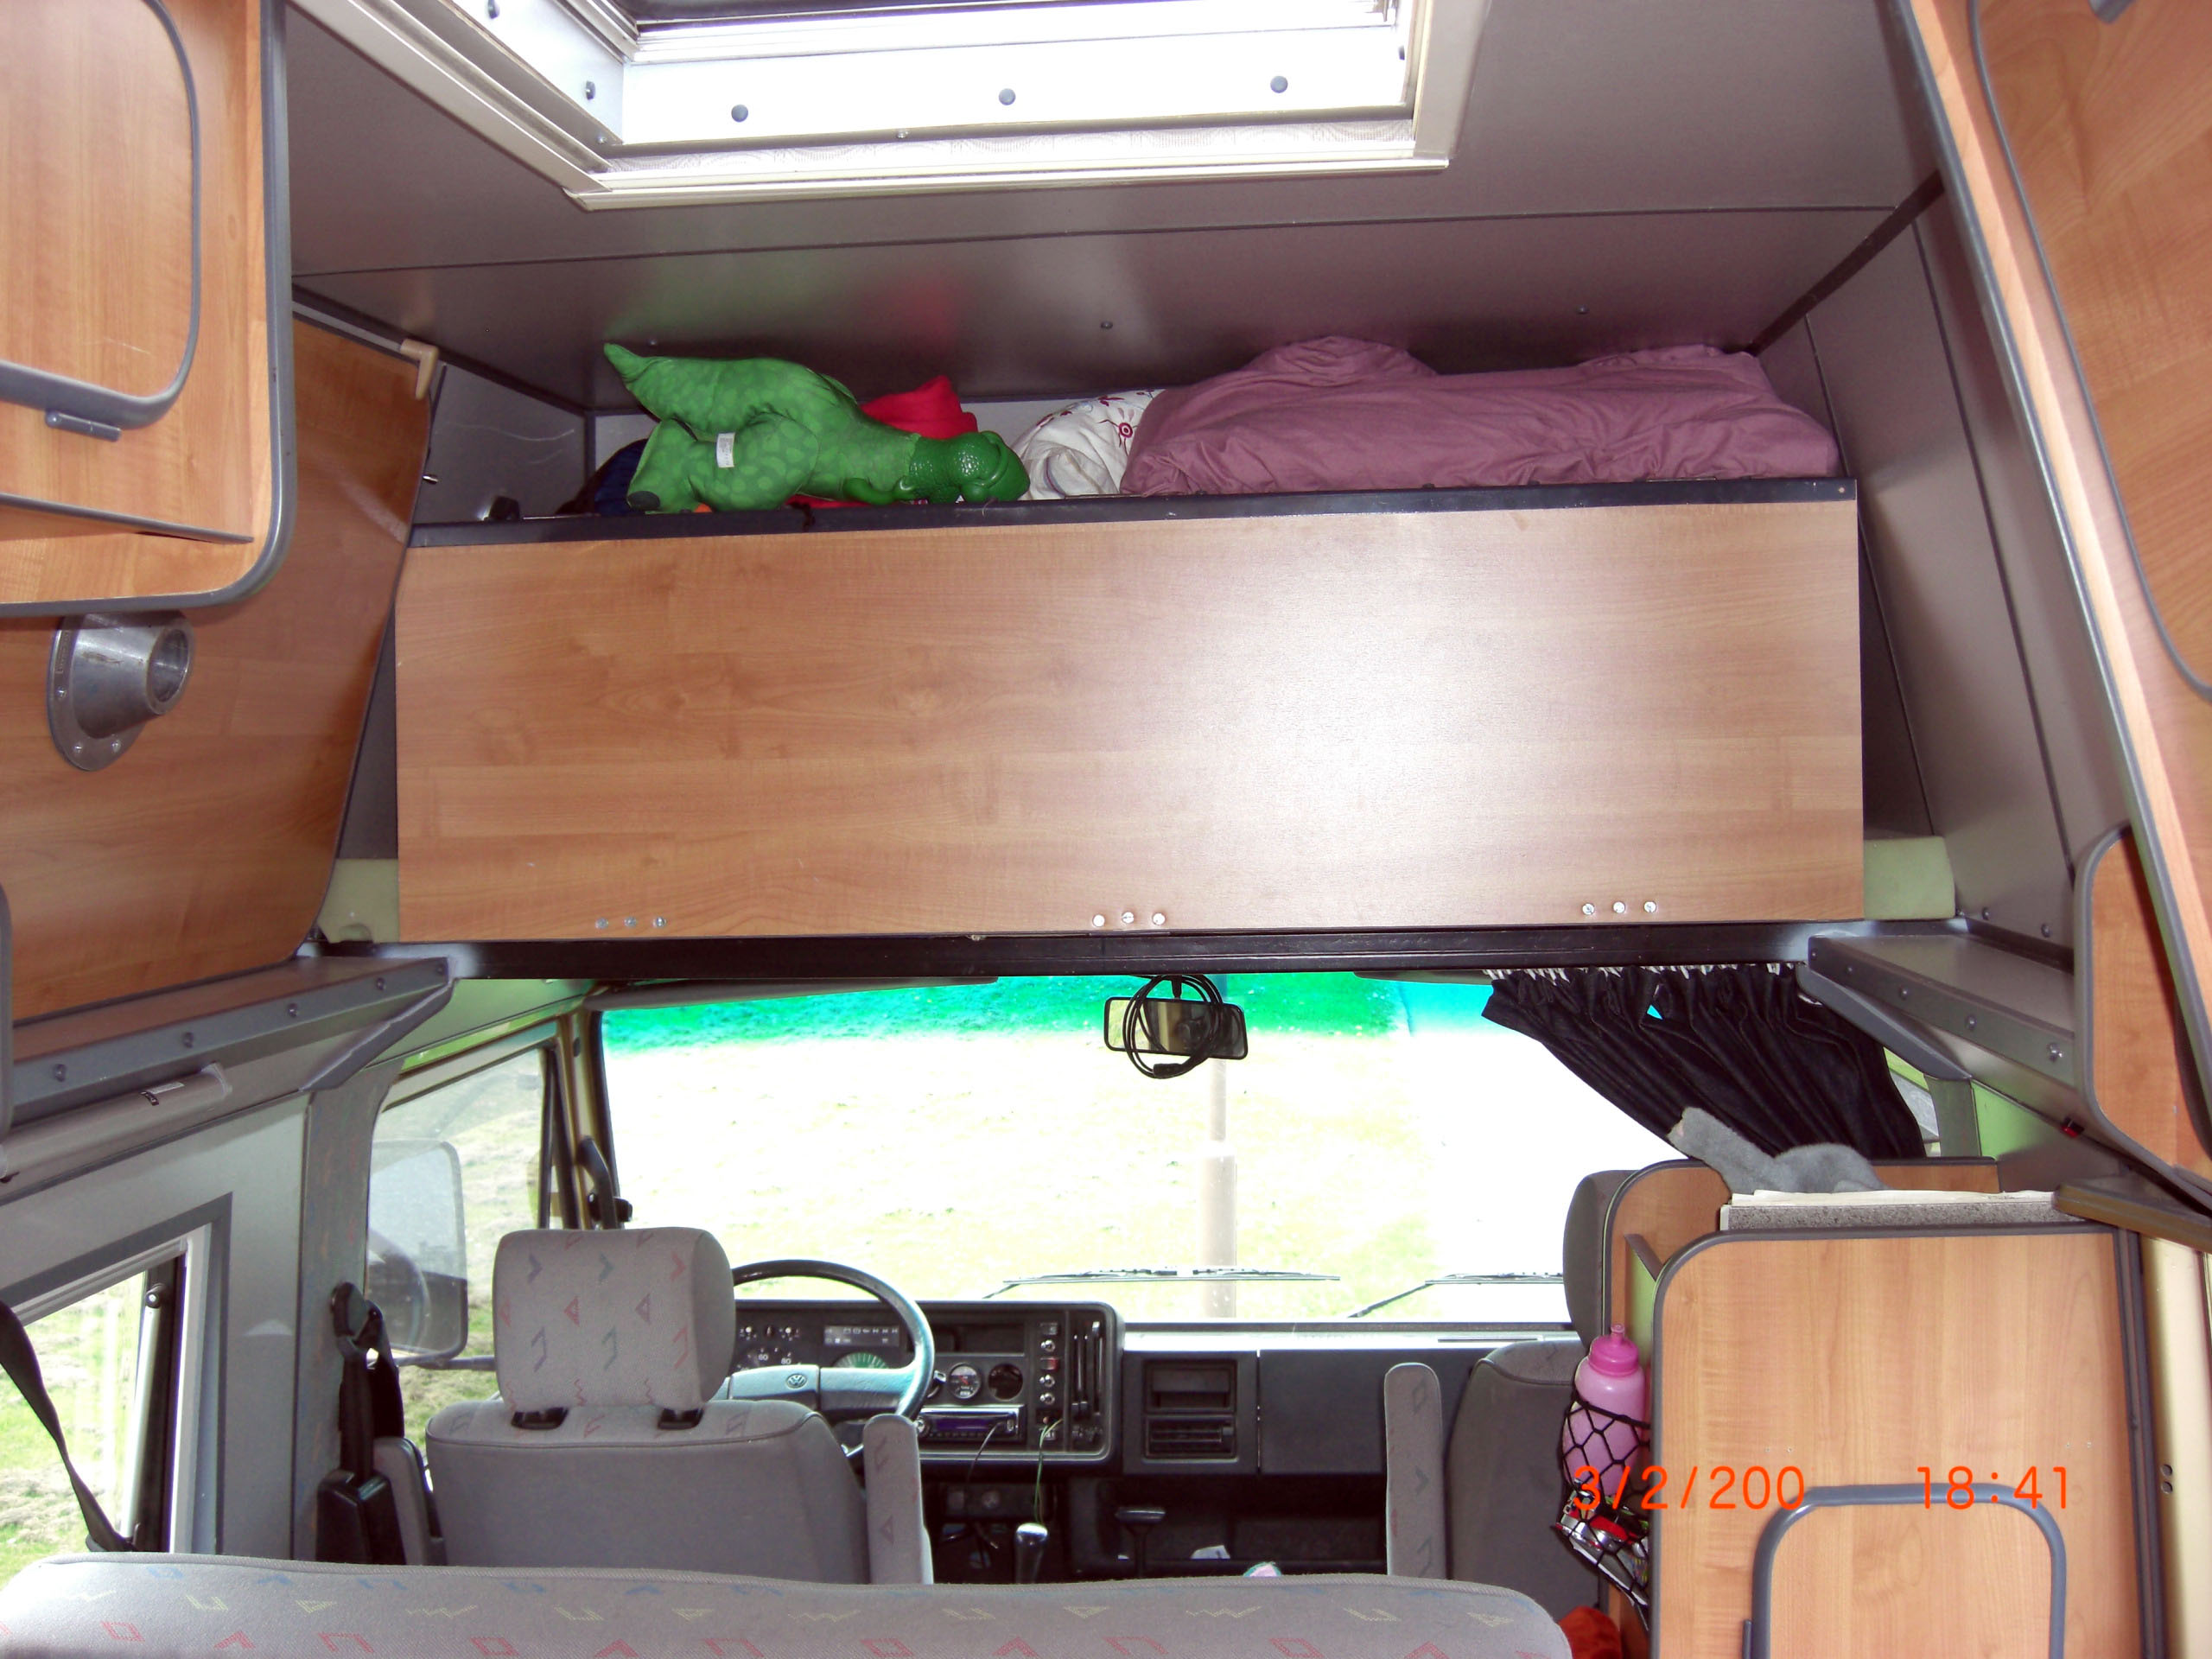 The Upper Bed Bunk Folds Down For A Massive Double Bed